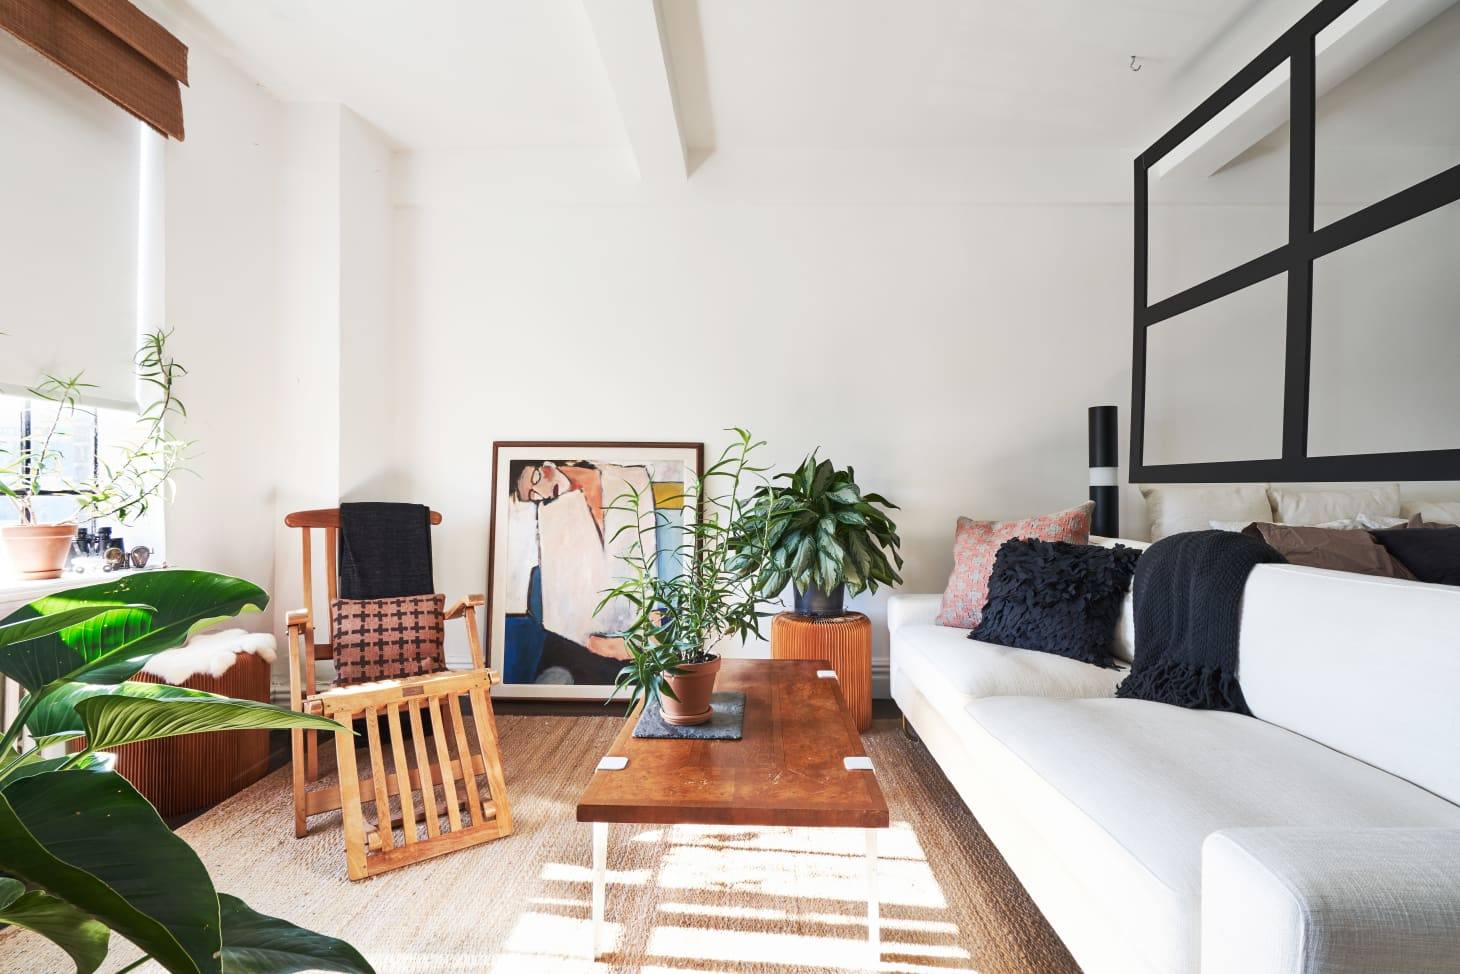 6 Lessons from Design Experts on How to Make Your Home Happier and Healthier (Partner)